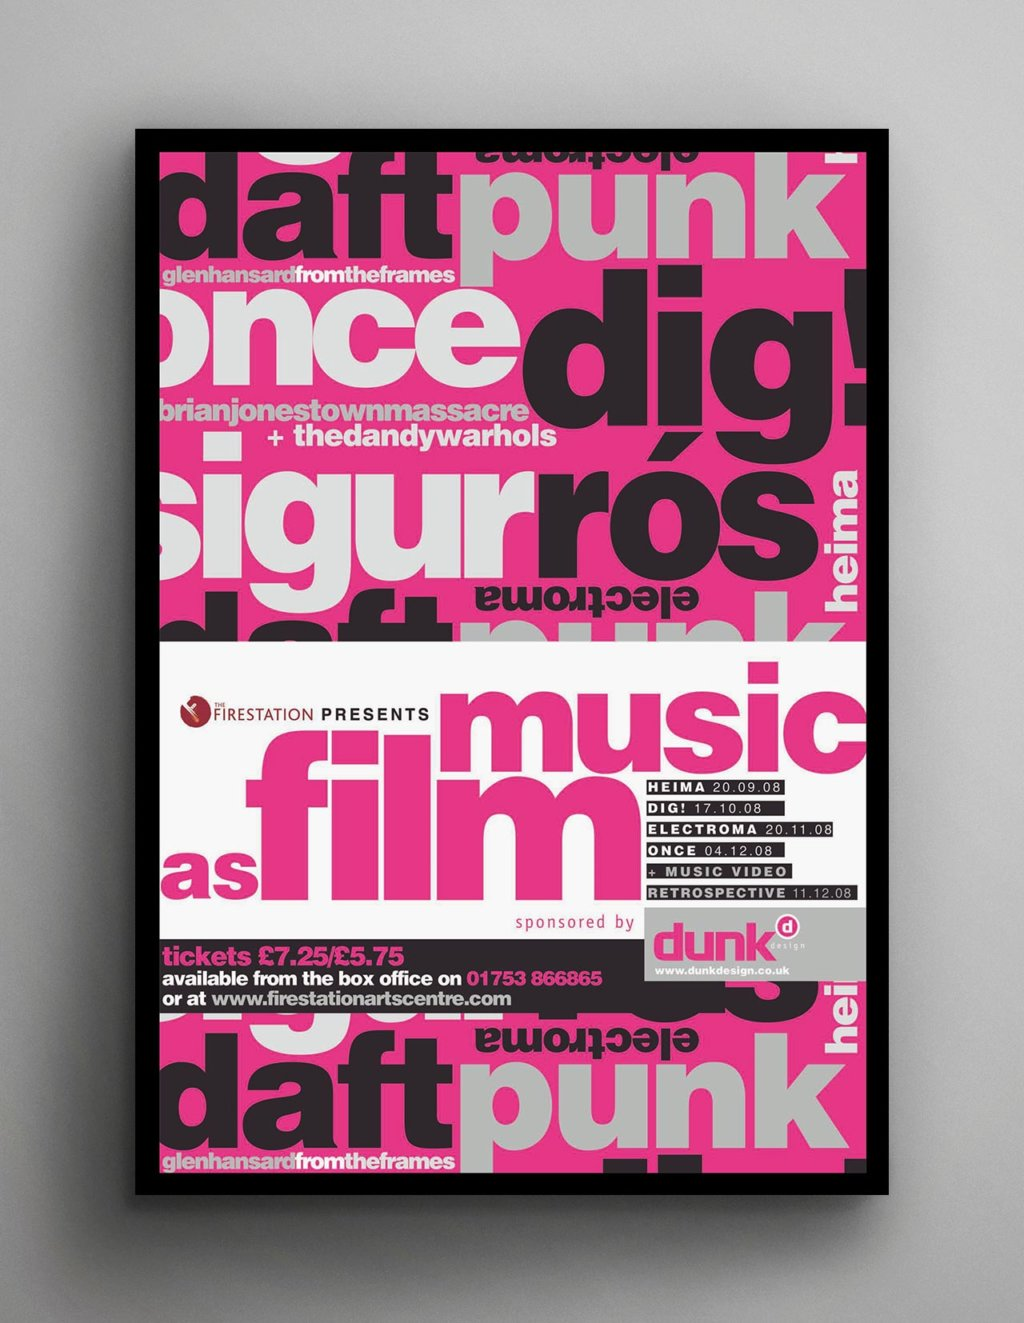 Music as film poster